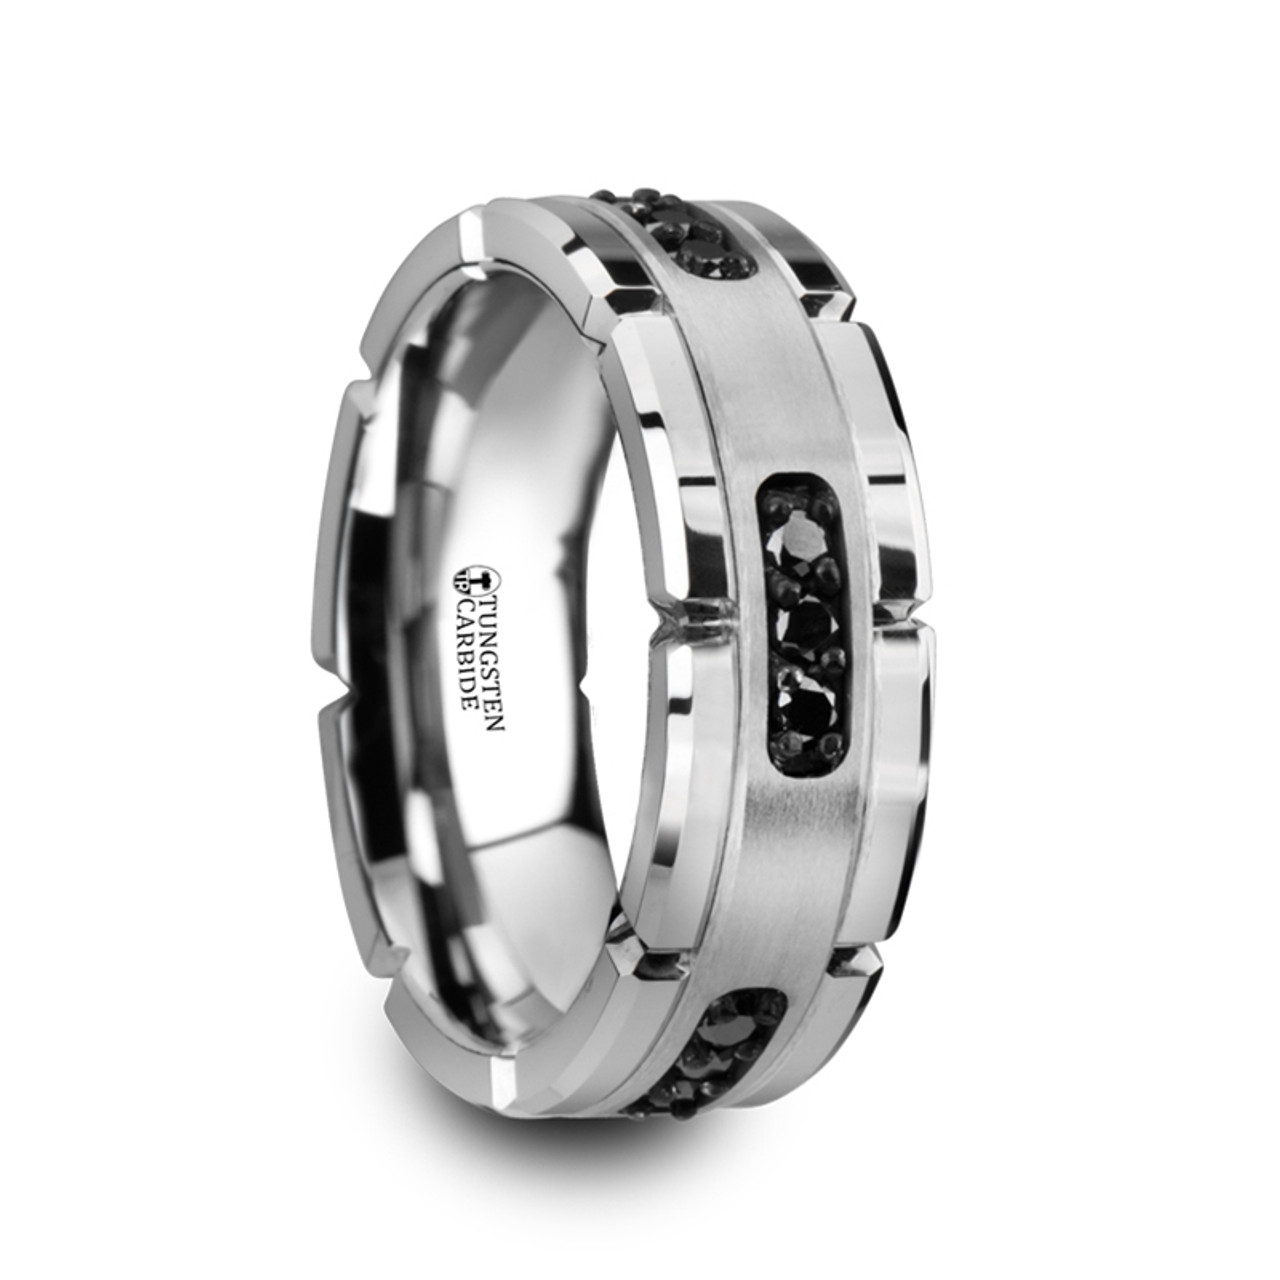 9mm Wedding Band 1 4 Ct Tw Black Diamonds Stainless Steel: Marcian Grooved Tungsten Men's Wedding Band With Silver